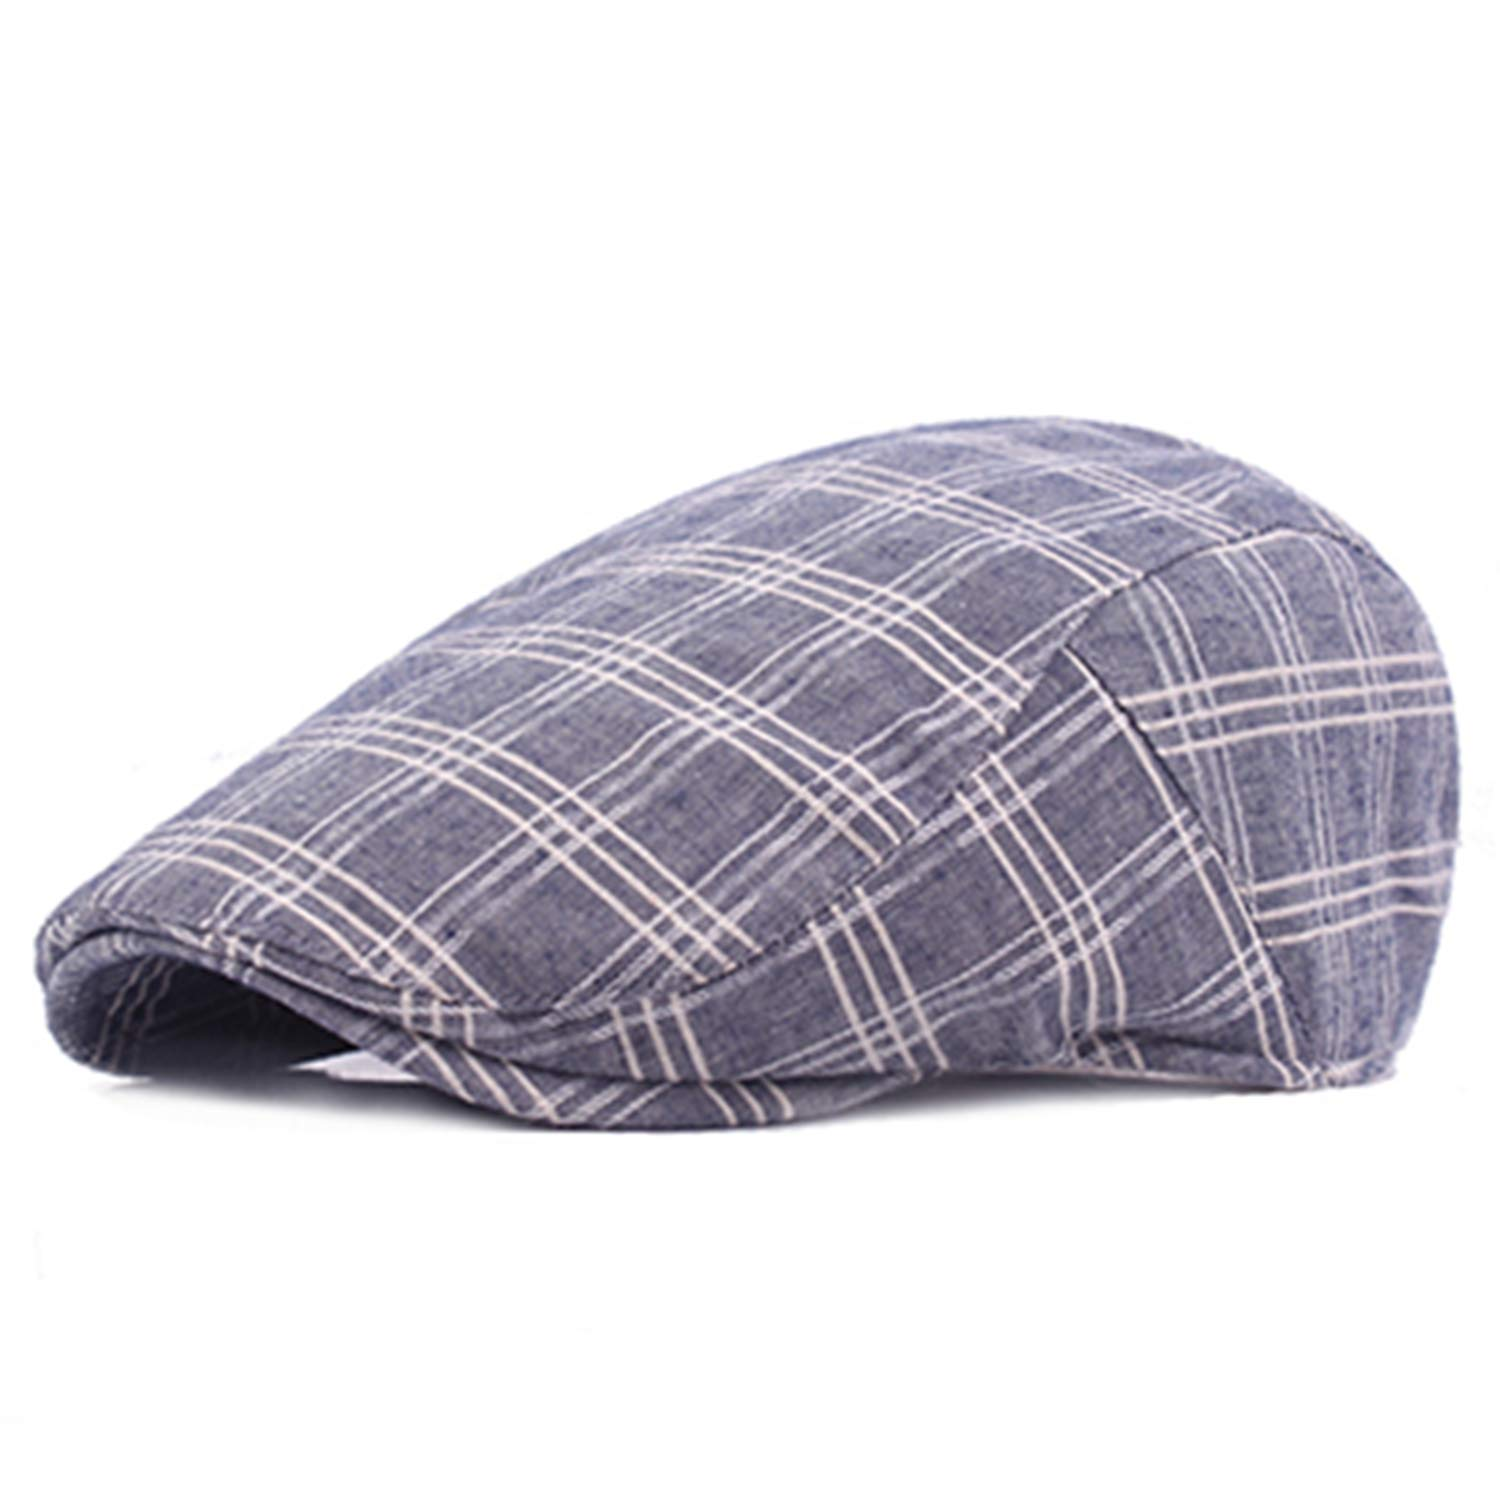 Casual Berets Hats Unisex Summer Sports Berets Caps for Men Women Adjustable Plaid Flat Sun Cap